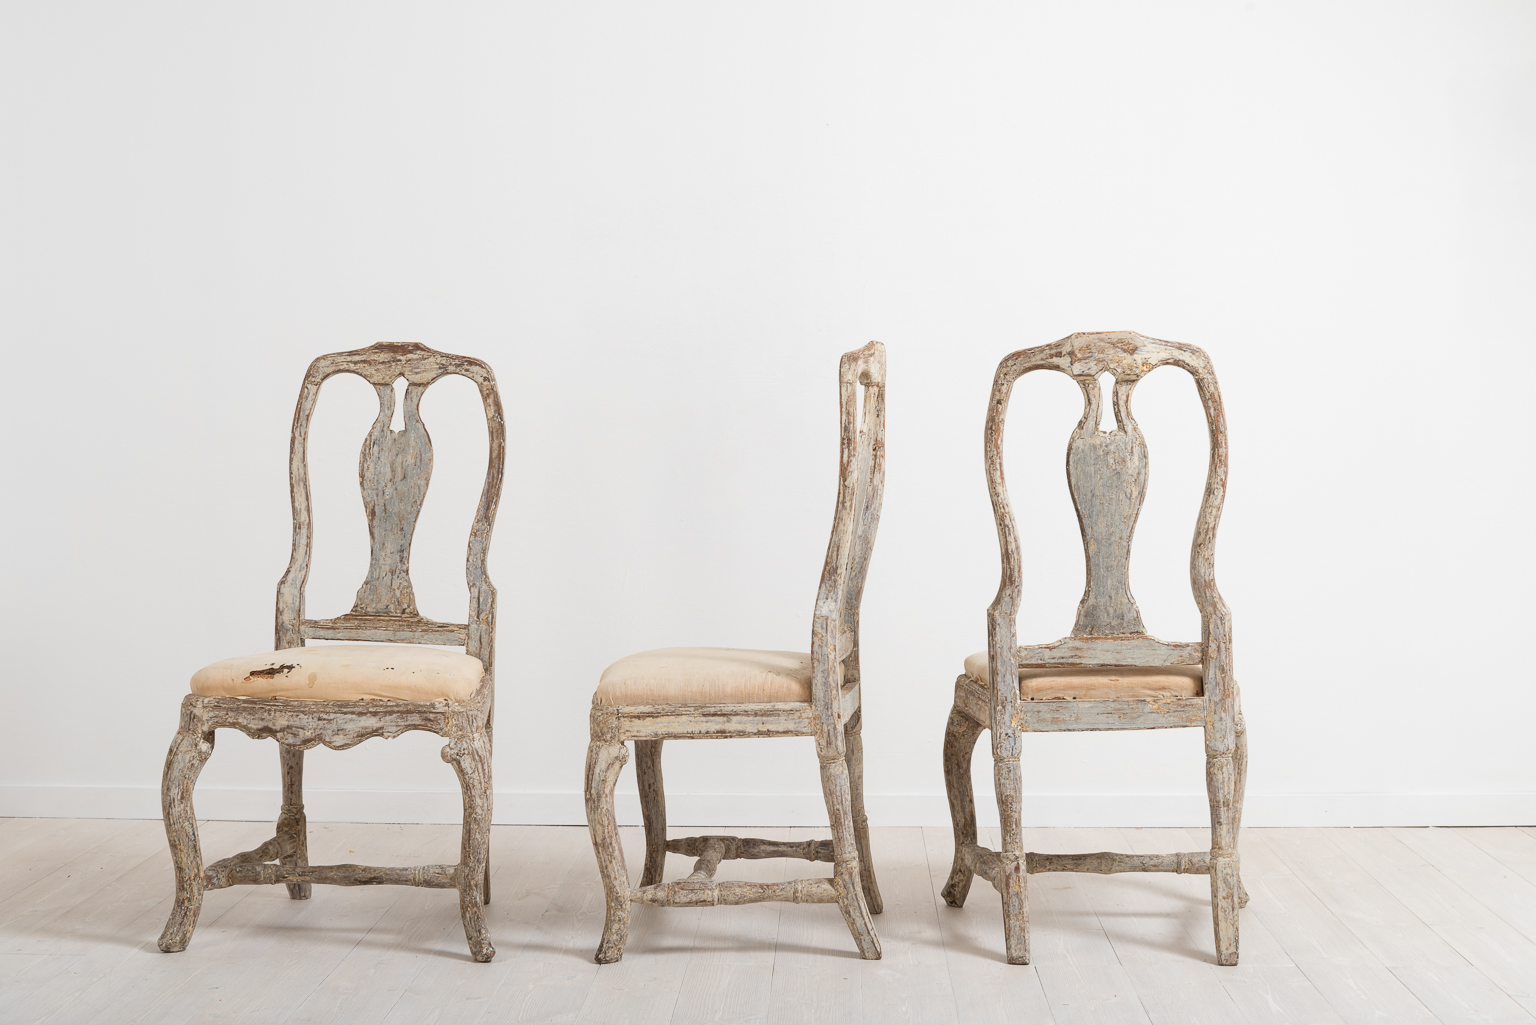 Three late baroque chairs from the middle of Sweden. Manufactured around 1770 the chairs are dry scarped to the original paint. Original seats